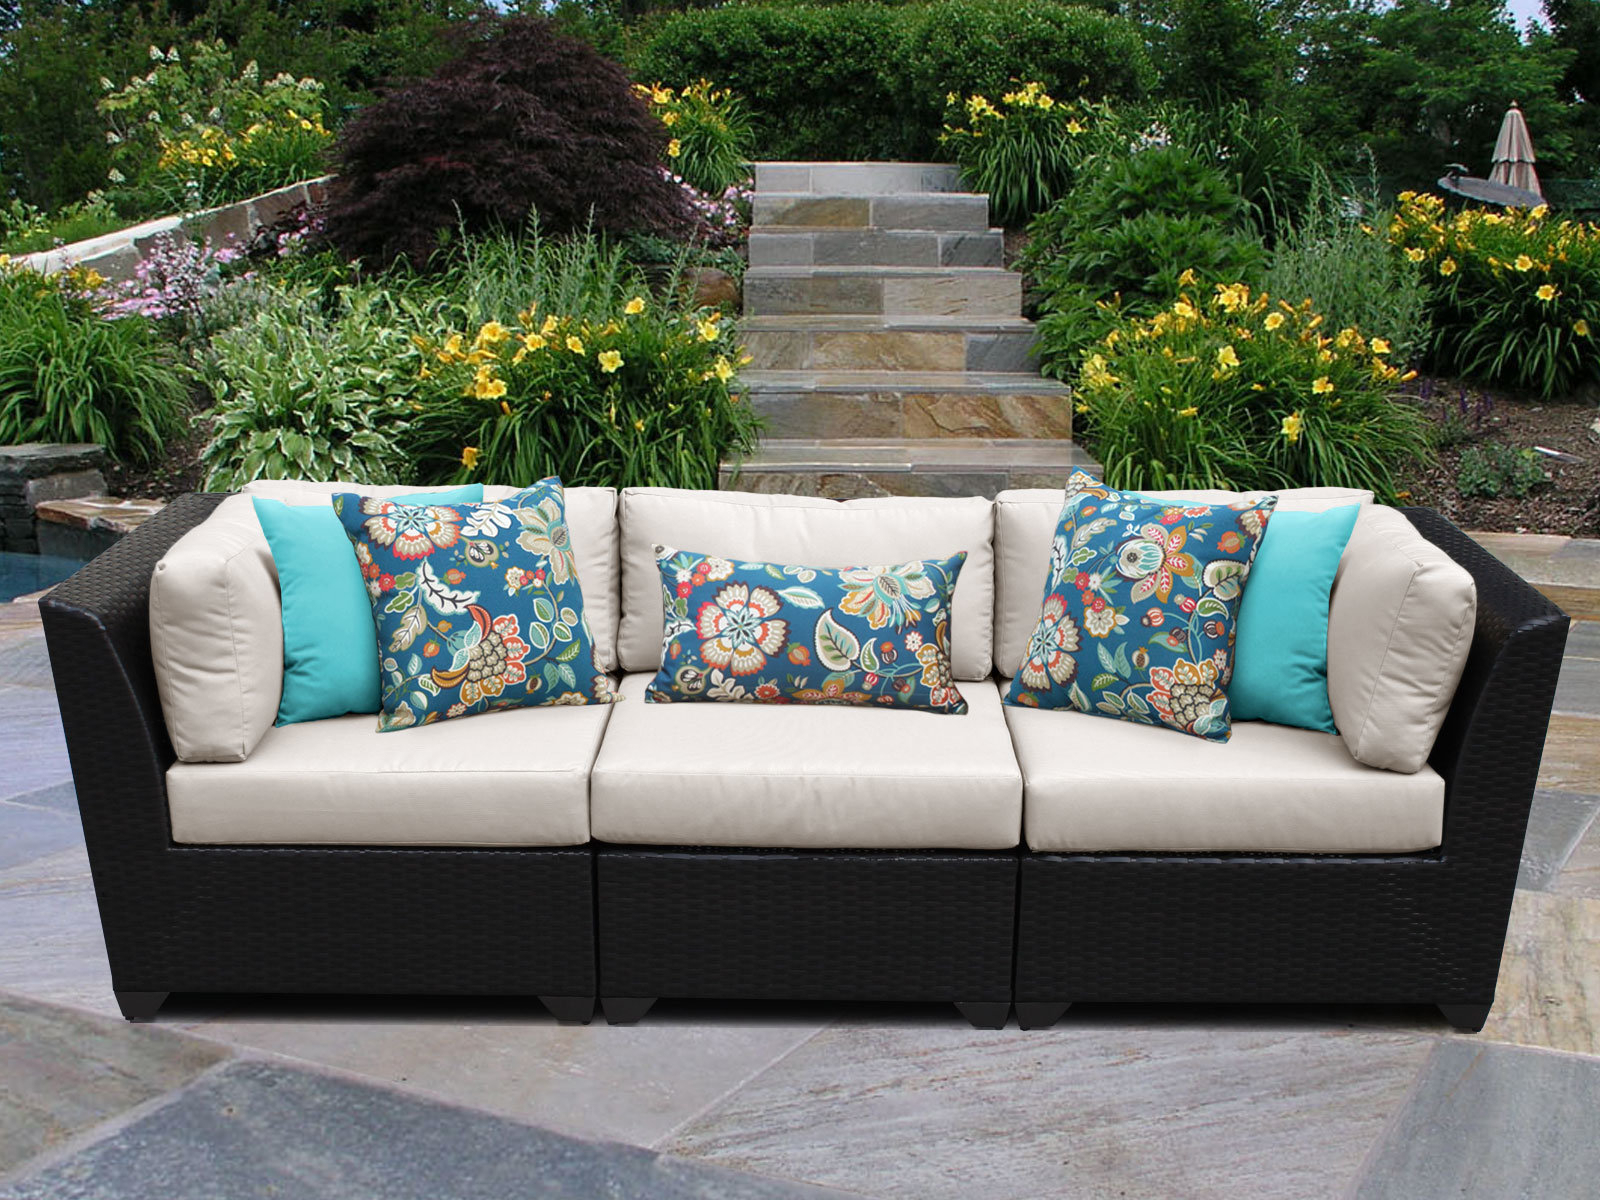 Popular Katzer Patio Sofas With Cushions Within Camak Patio Sofa With Cushions (View 19 of 20)